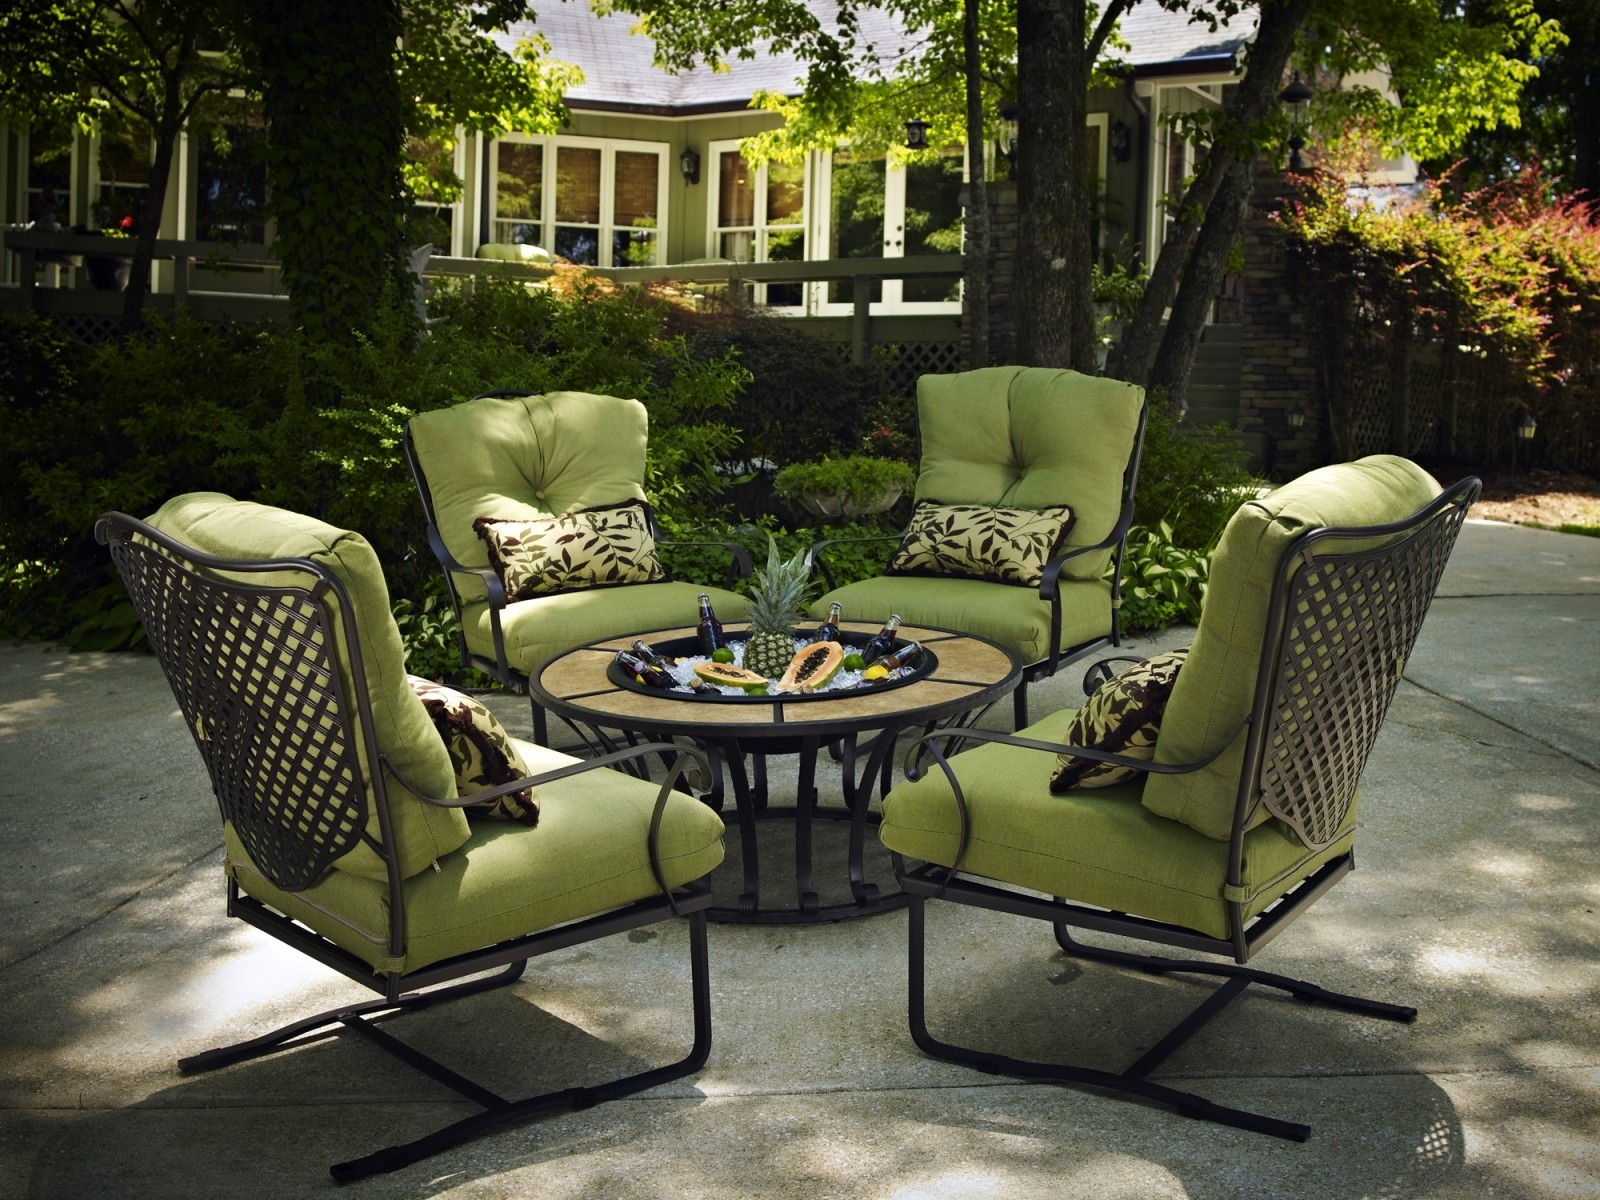 Patio Conversation Sets With Cushions Inside Preferred Patio : Wrought Iron Patio Furnitureca Furniture Value Plantation (View 12 of 20)